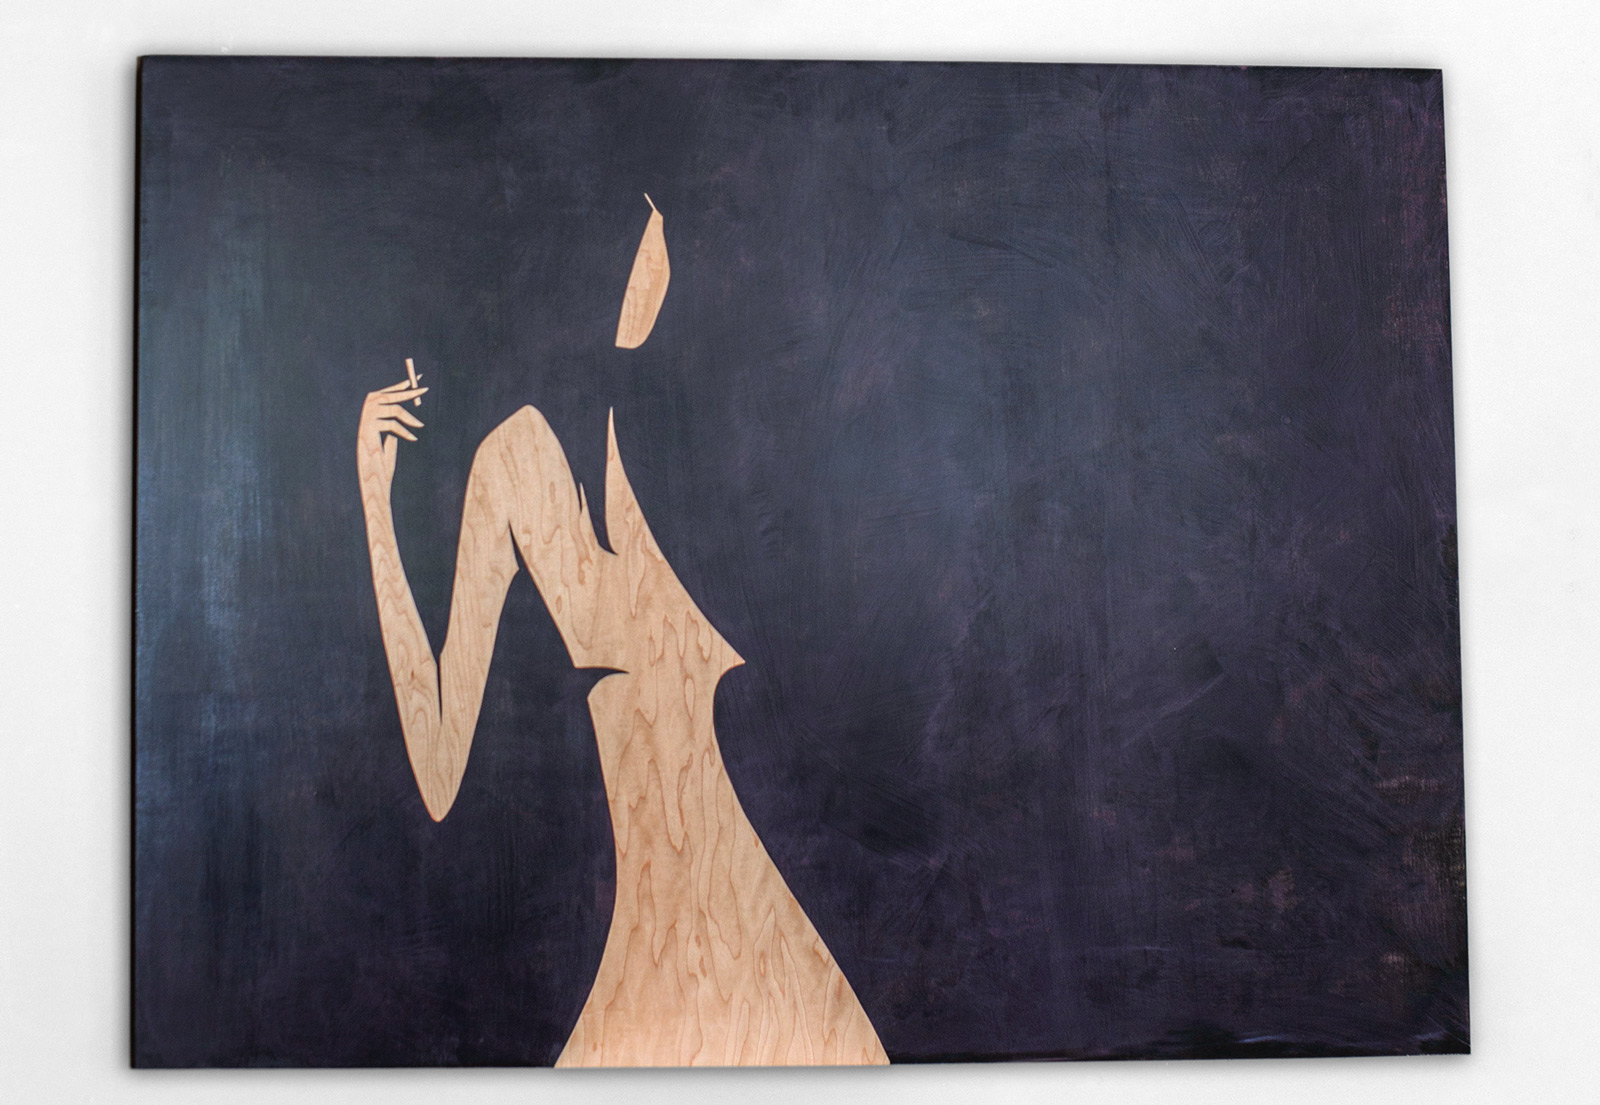 Smoking Girl painting by Troy DeShano 2014.